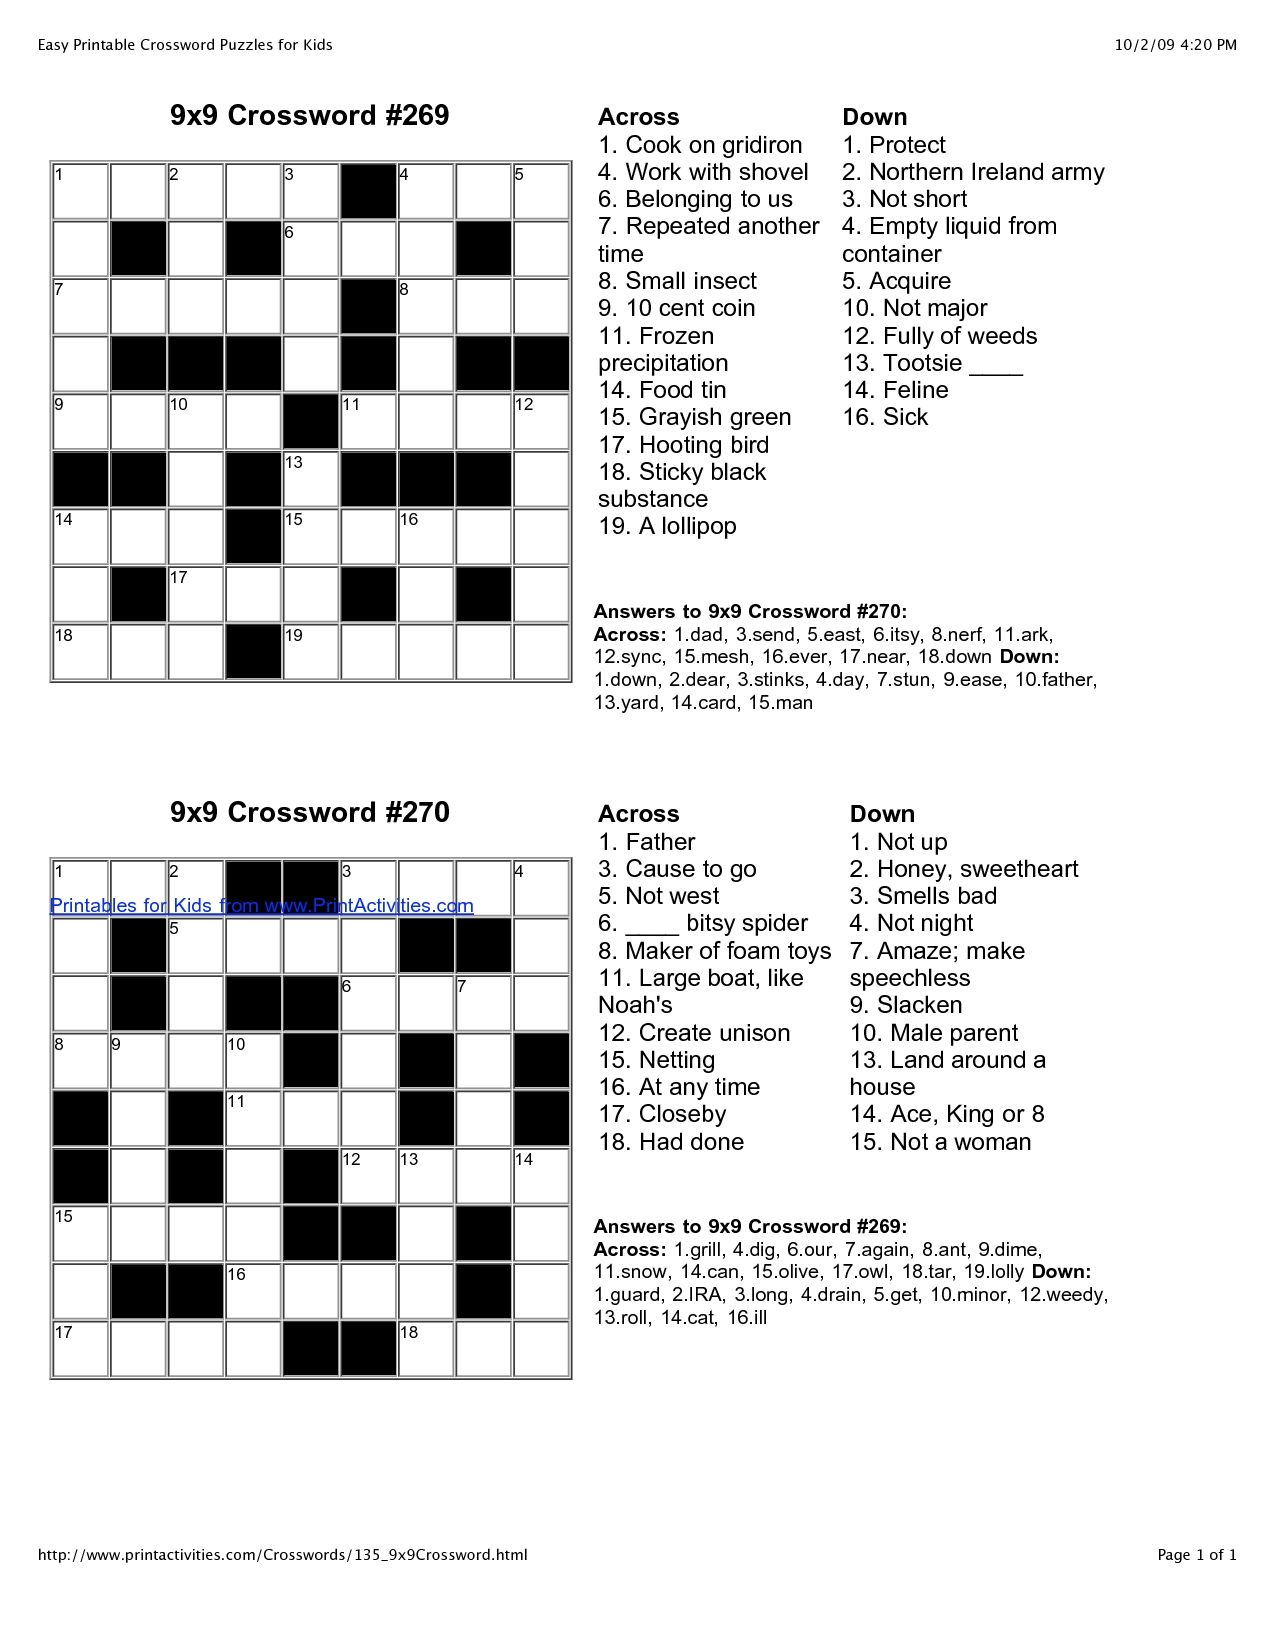 Easy Crossword Puzzles With Answers Pdf